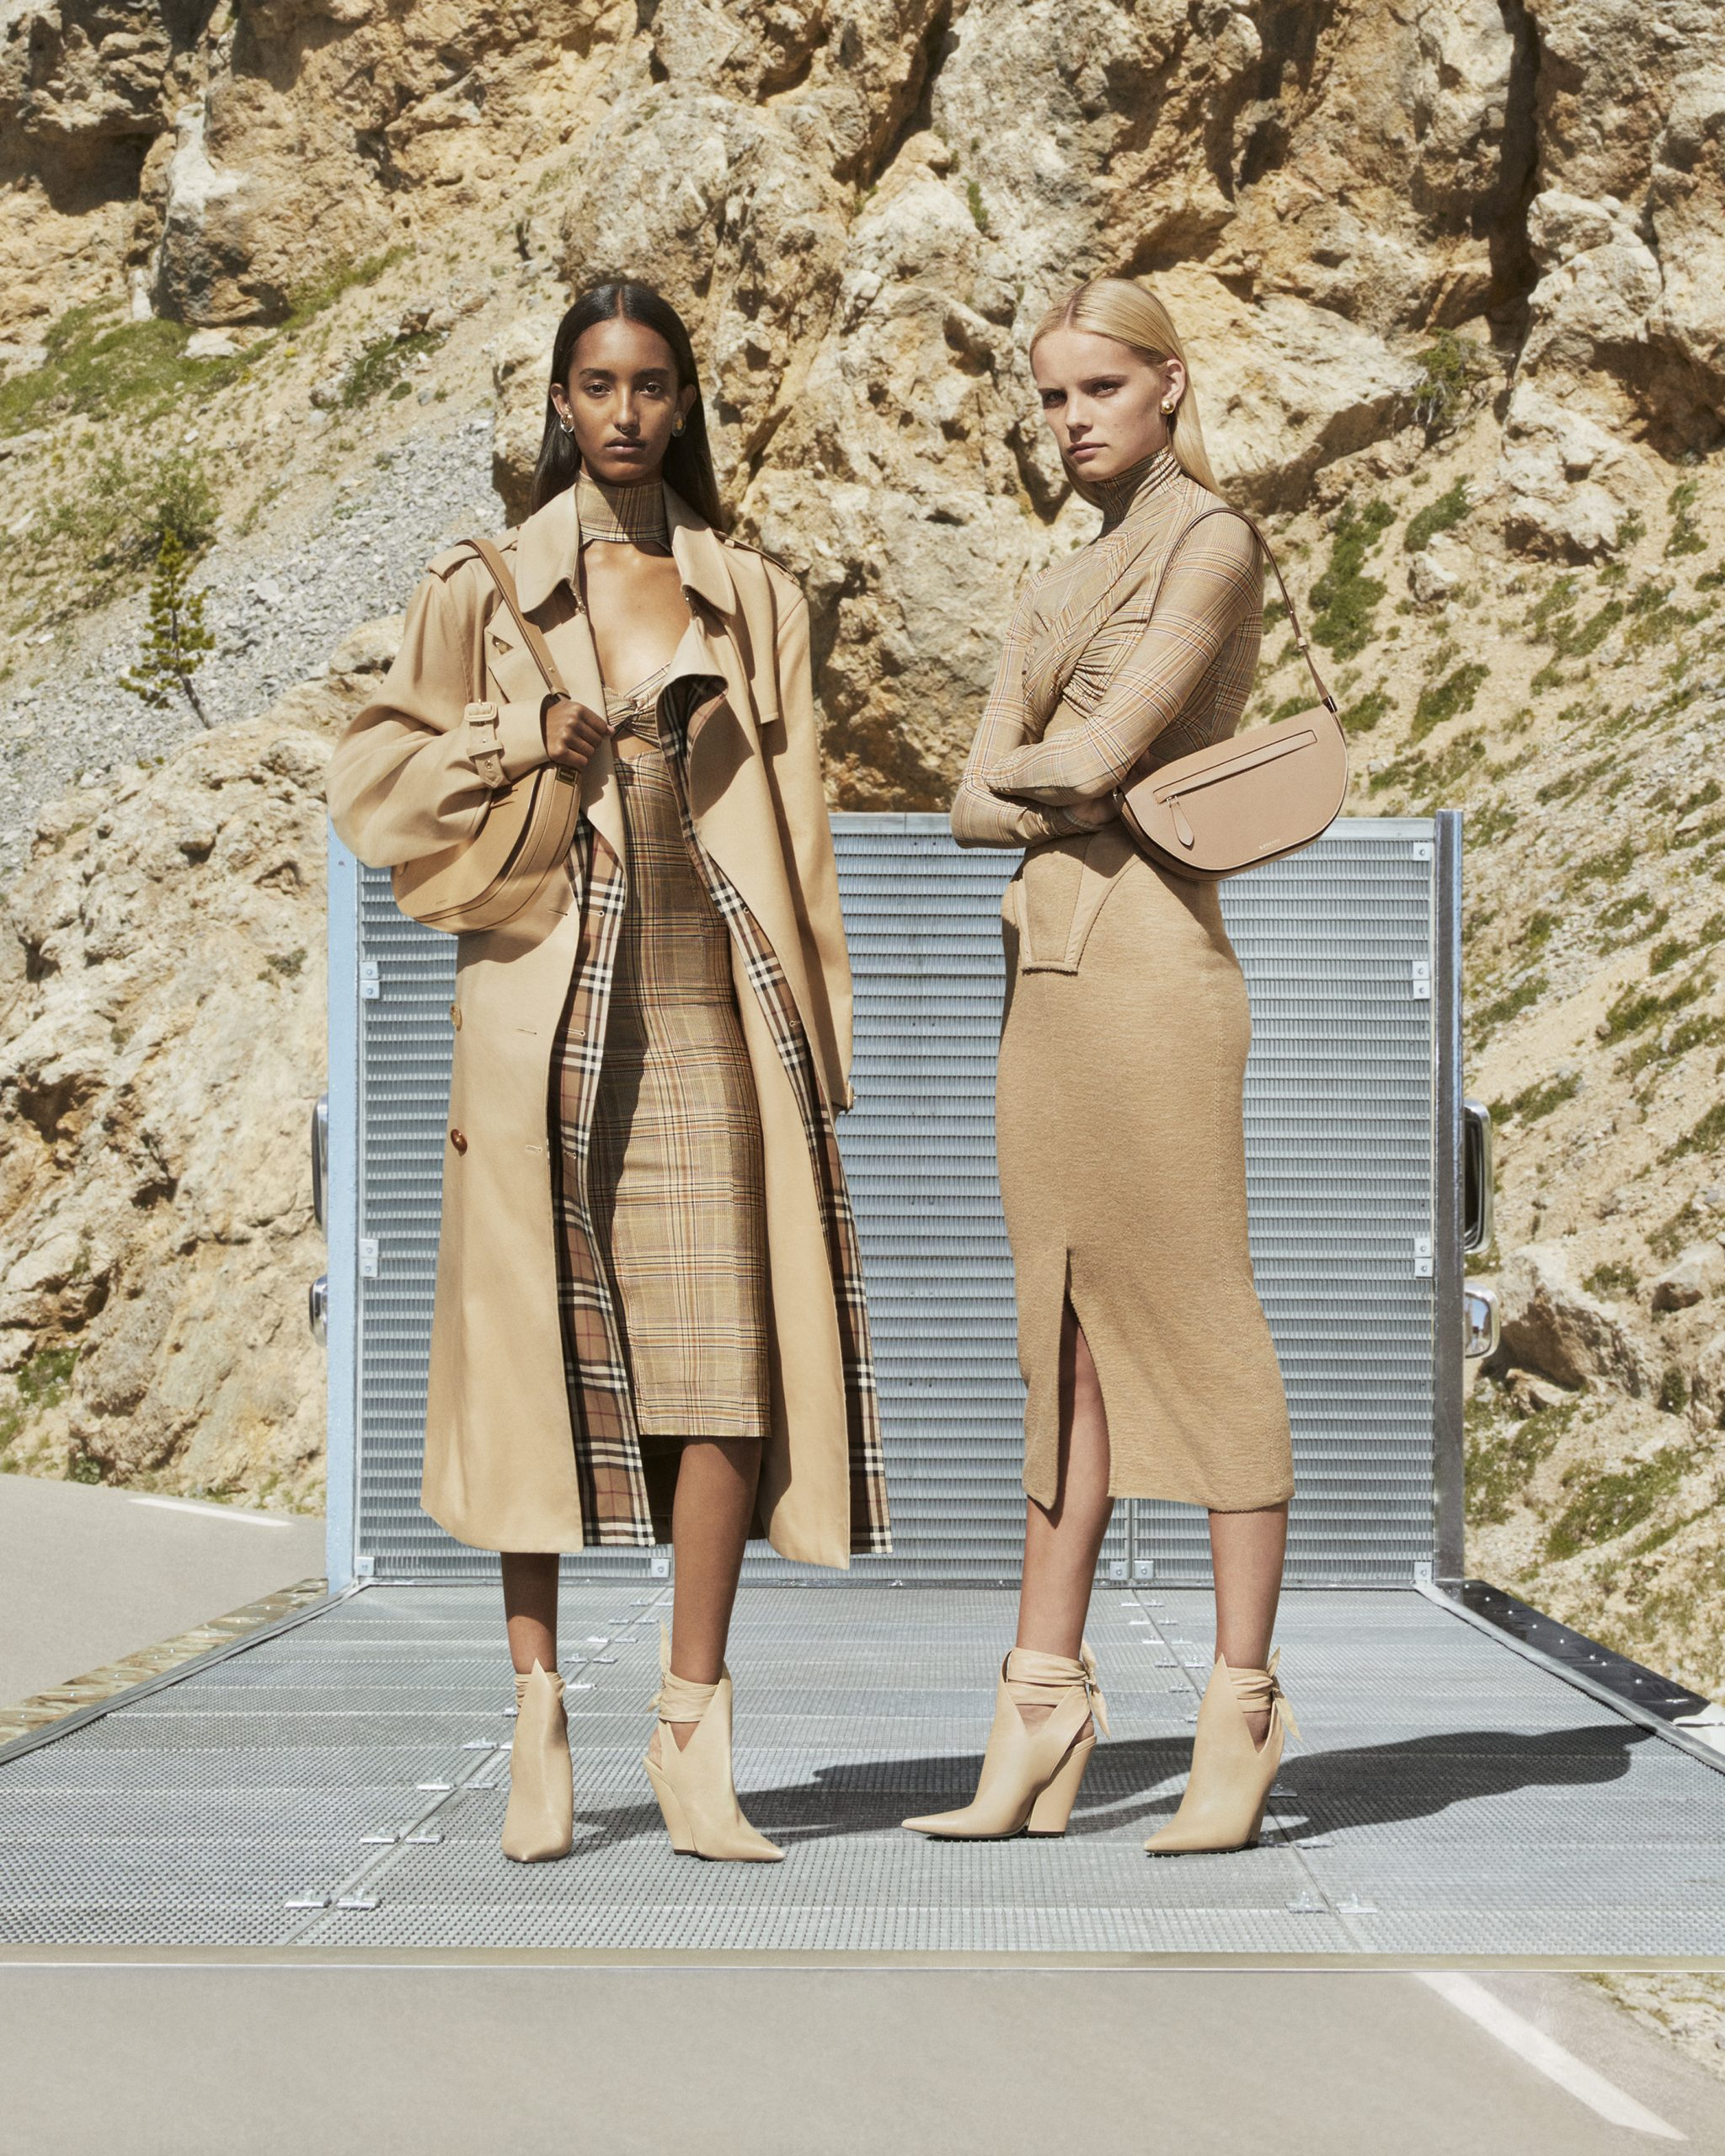 Fall 2020 Fashion Advertising Trends